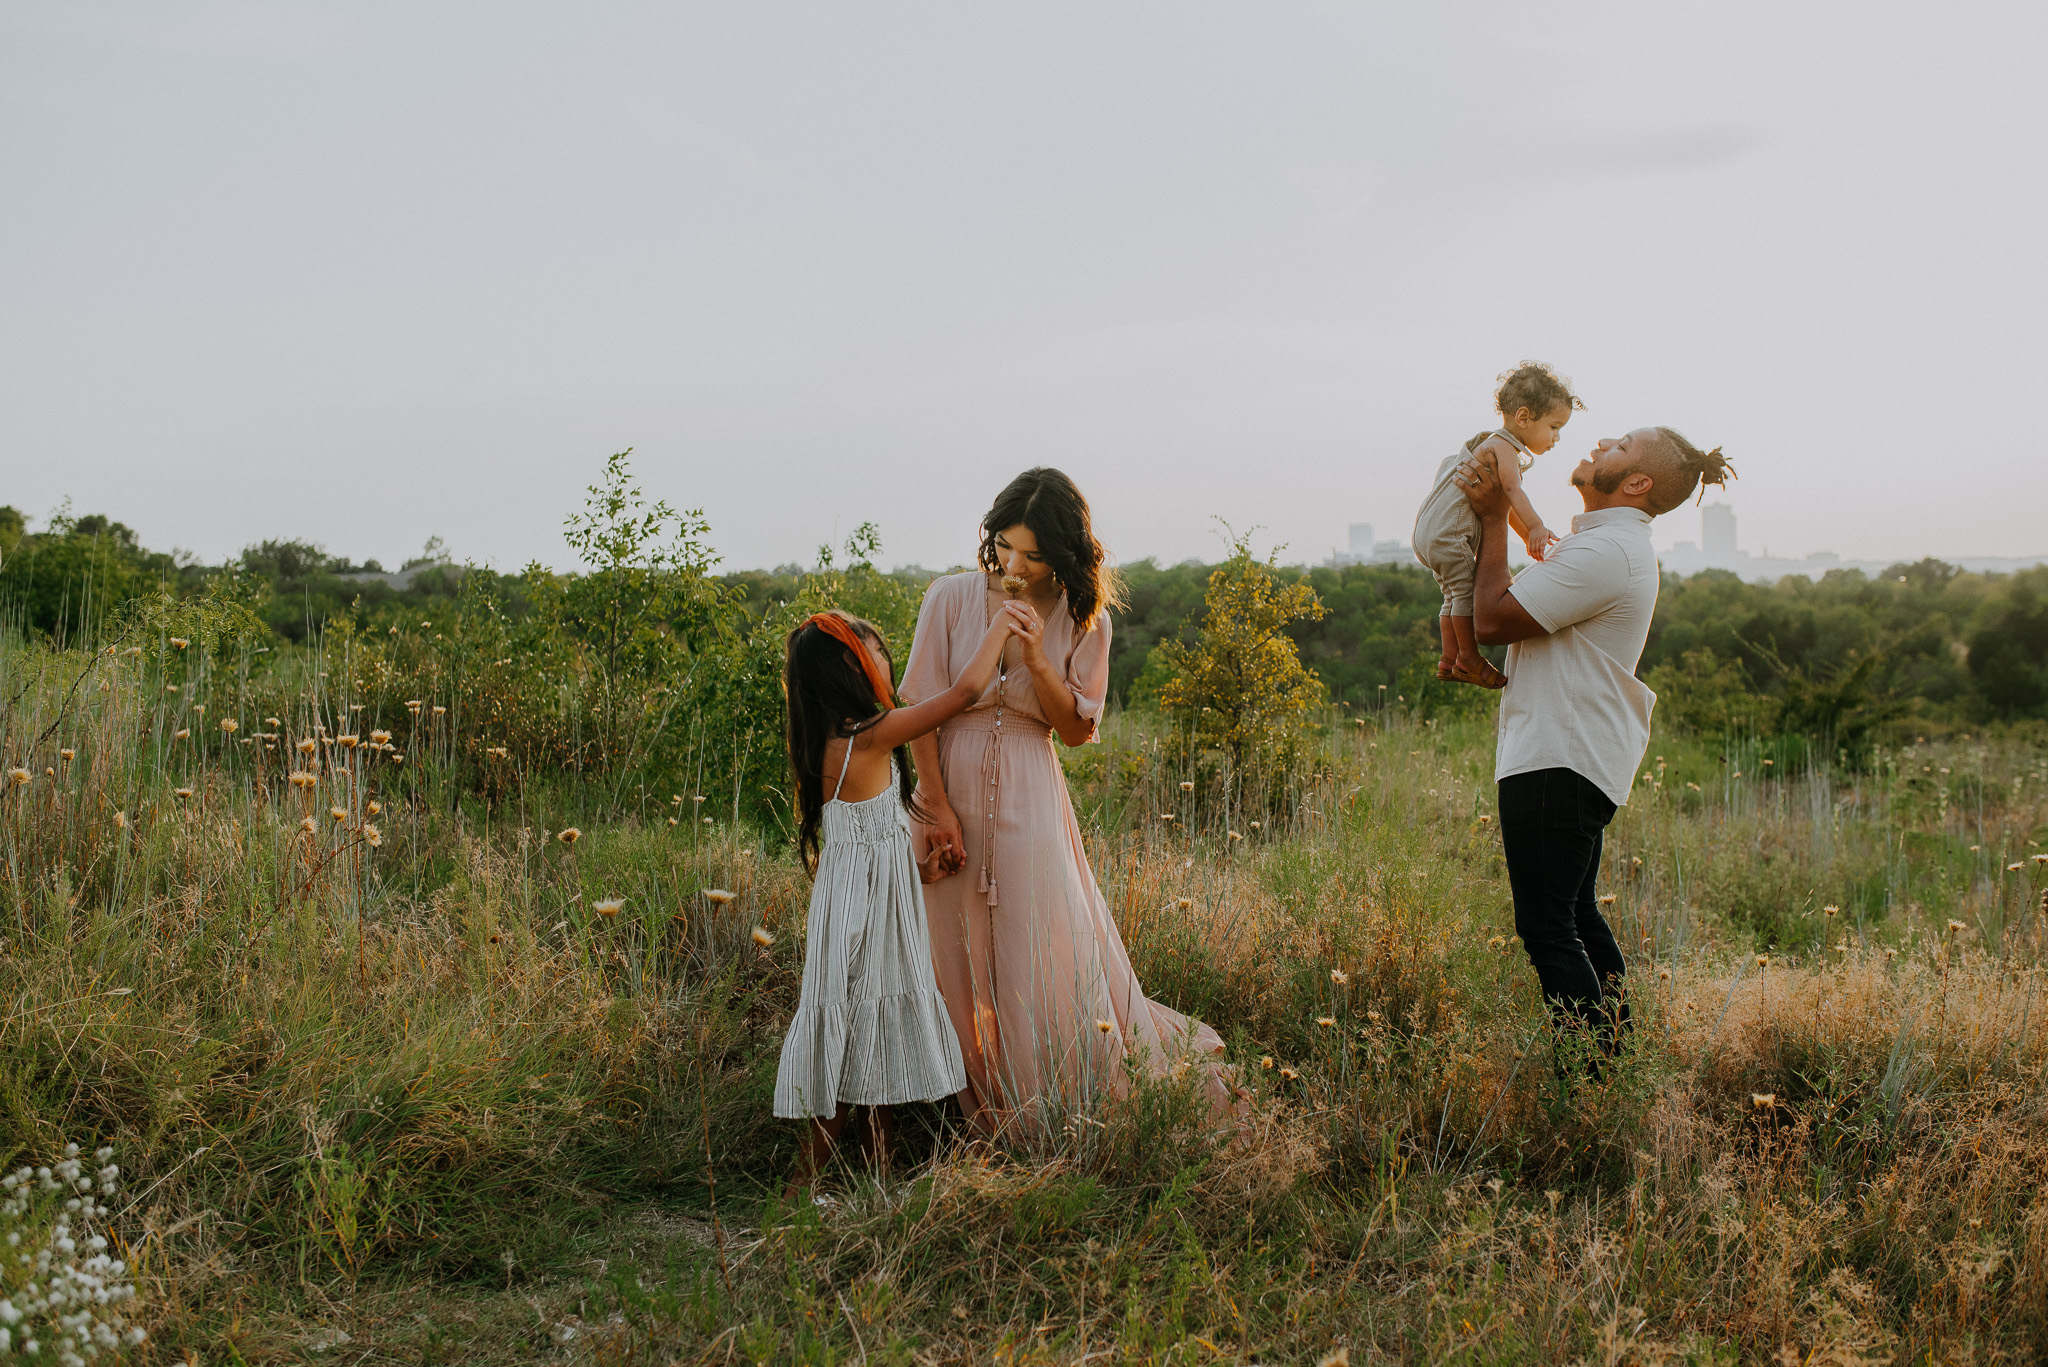 Jessi-marie-photography-dallas-fort-worth-texas-family-photographer-tandy-hills-natural-area-13